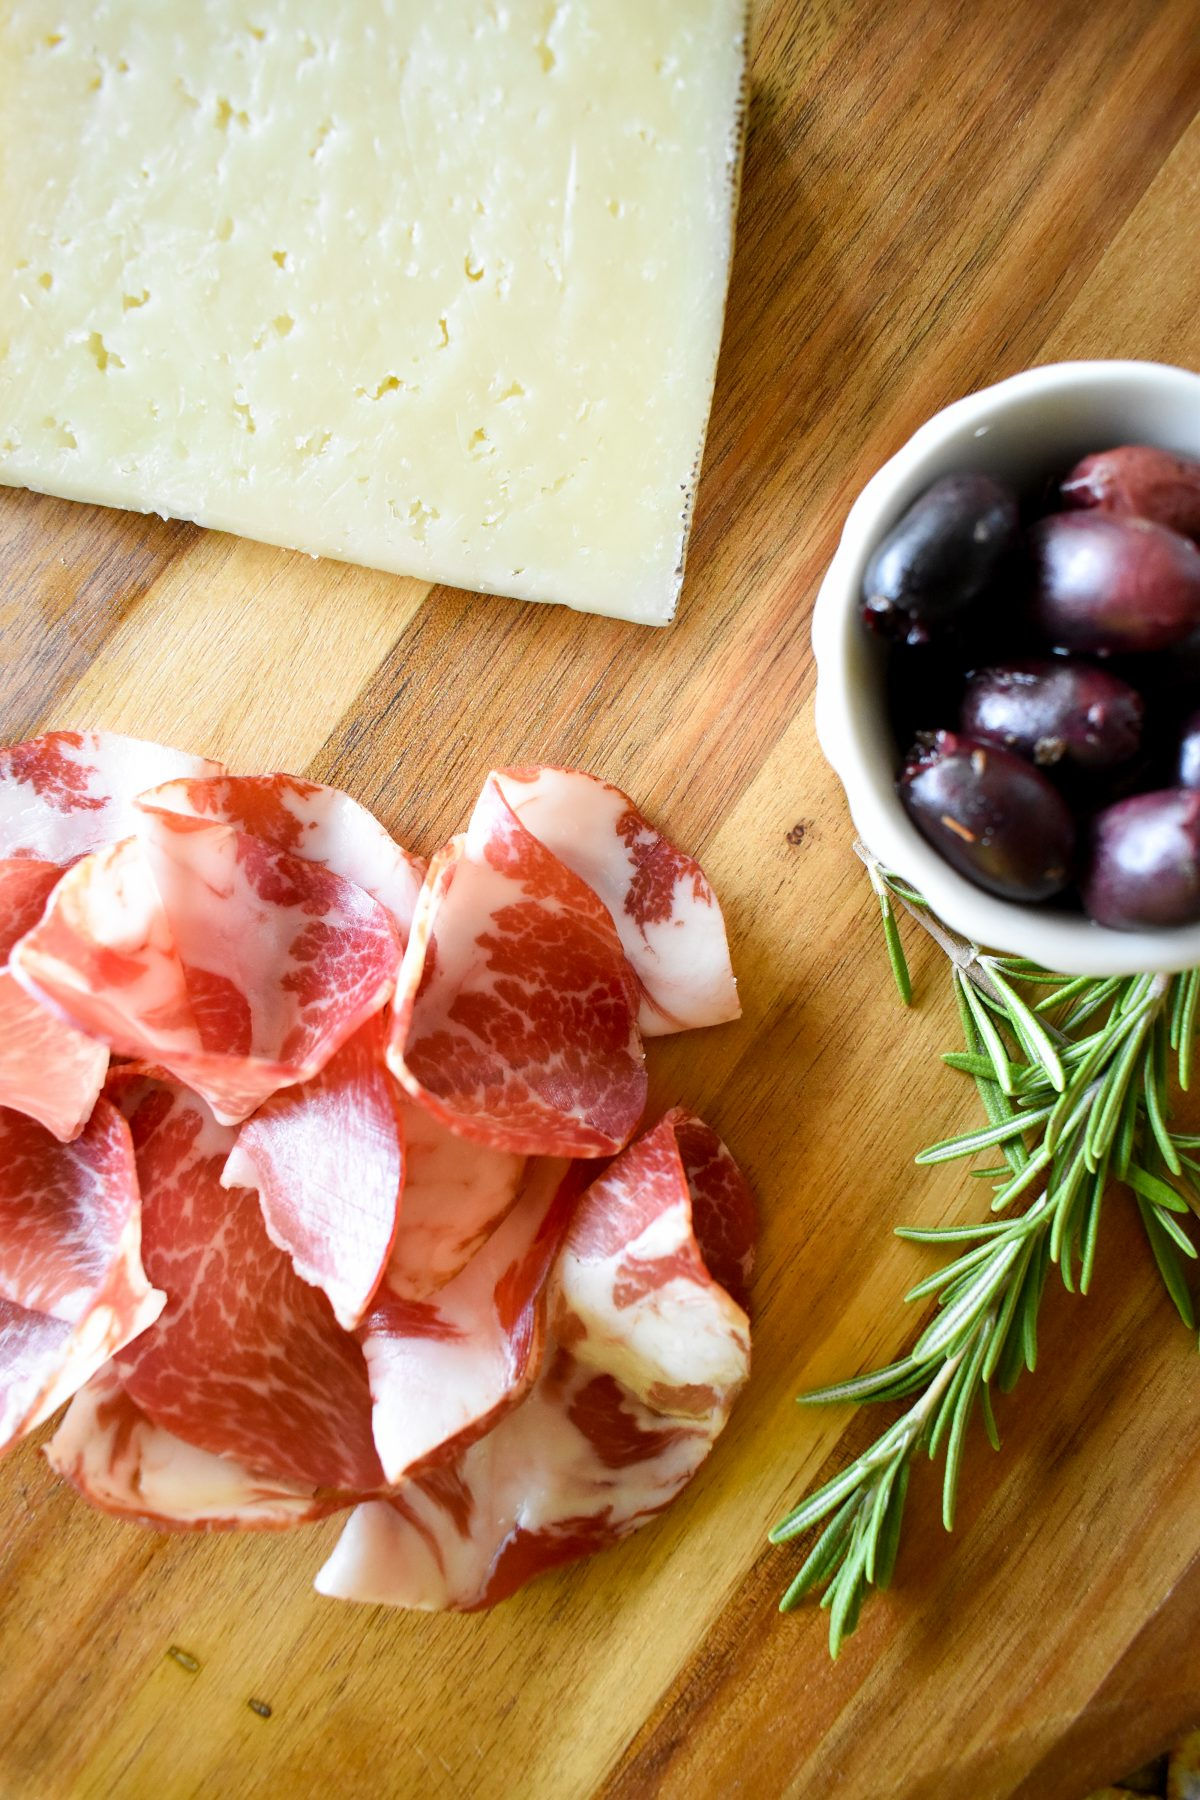 A close up of Erin's charcuterie board showing detail of coppa, manchego, and olives.